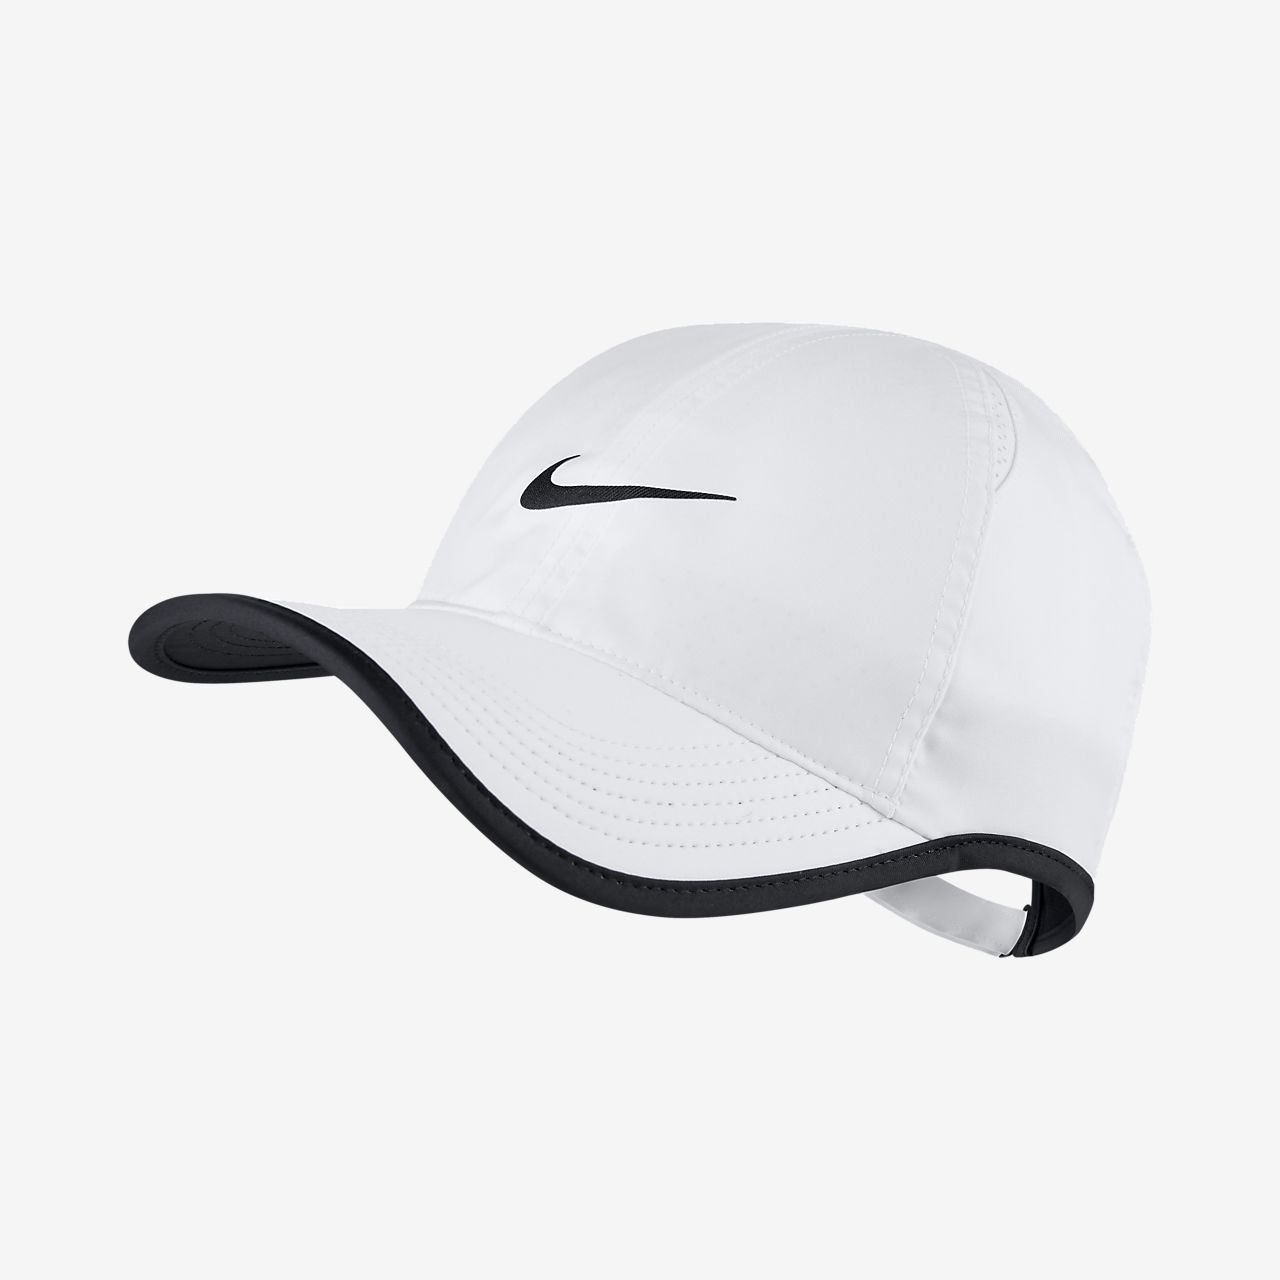 3508ef045e9 NikeCourt Featherlight Adjustable Tennis Hat. Nike.com